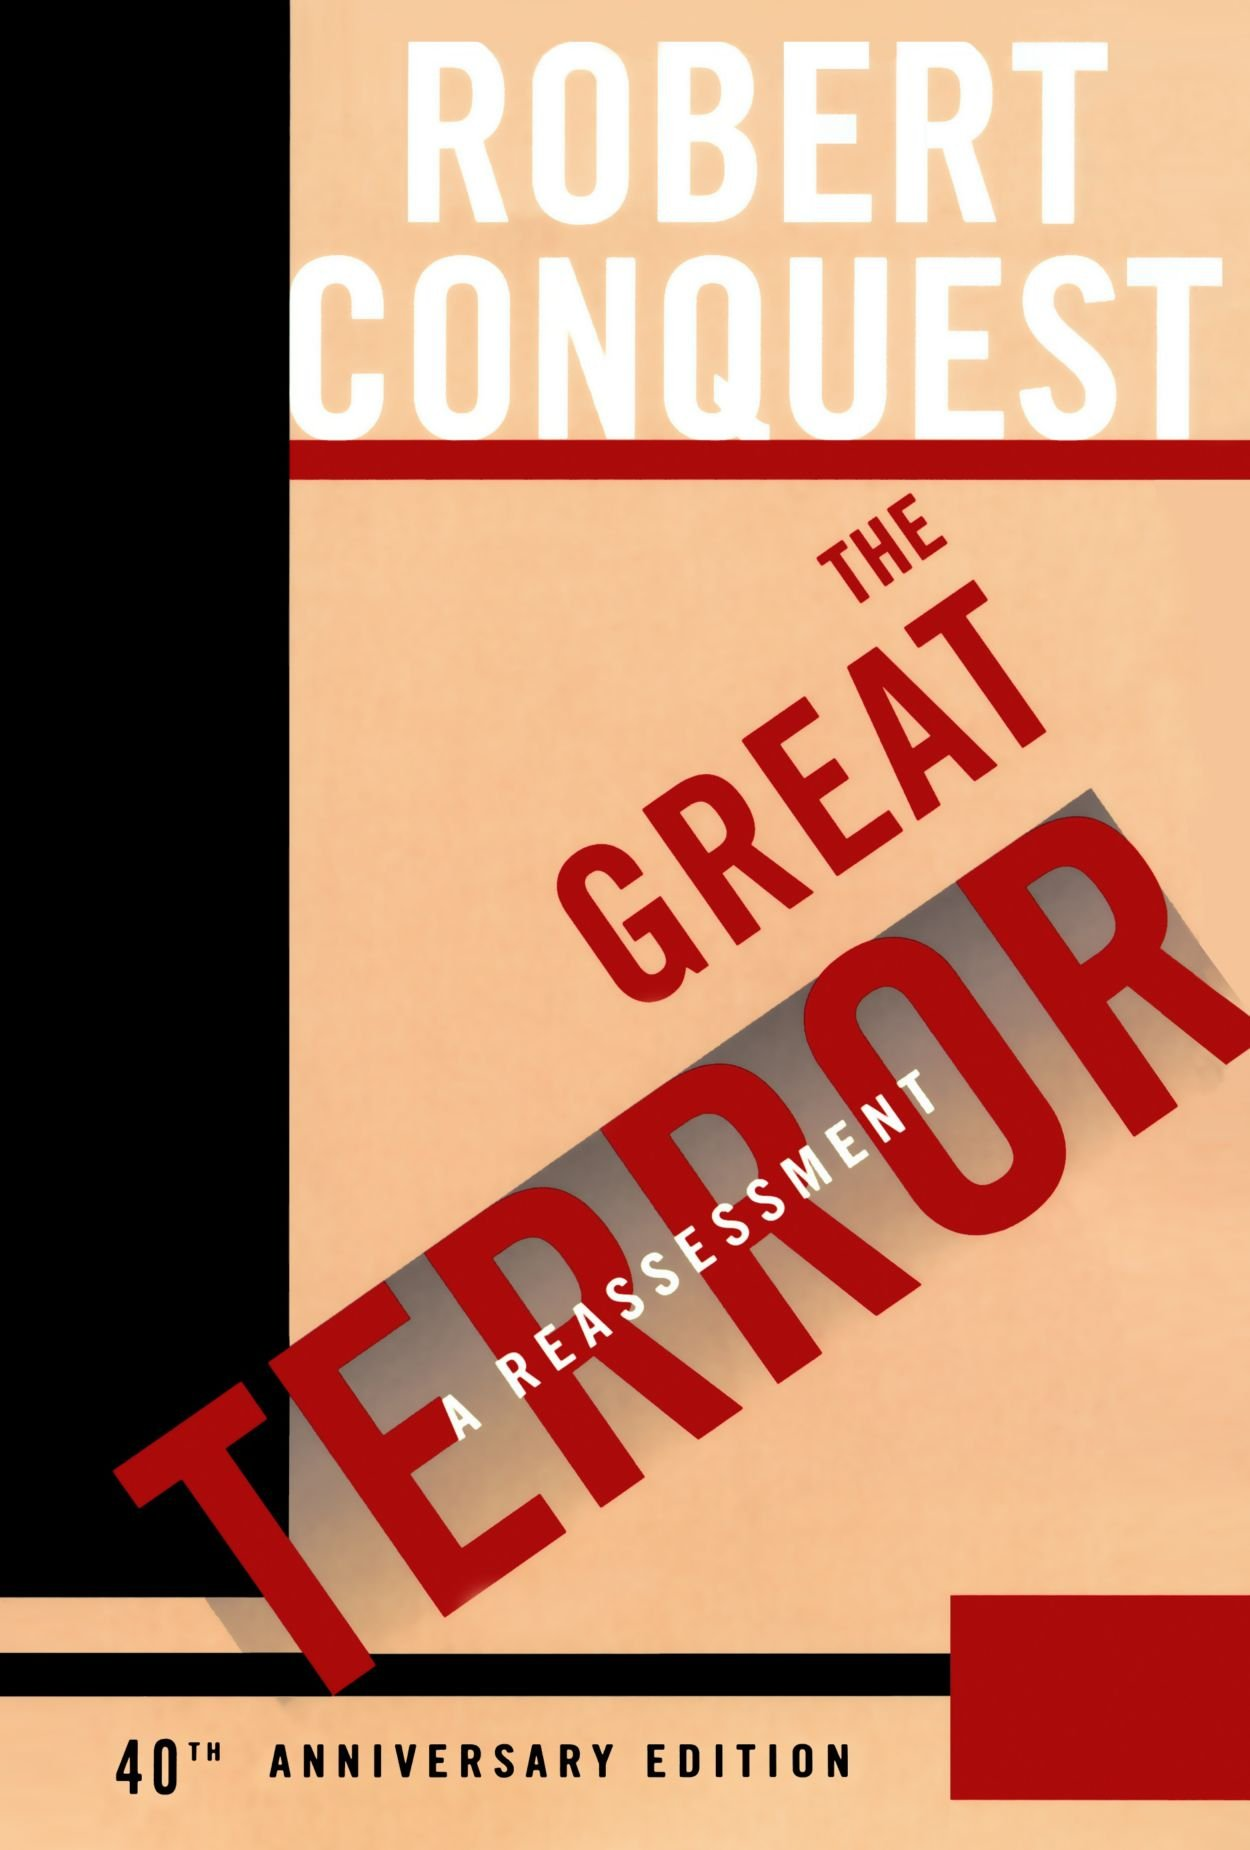 The Great Terror: A Reassessment by Oxford University Press